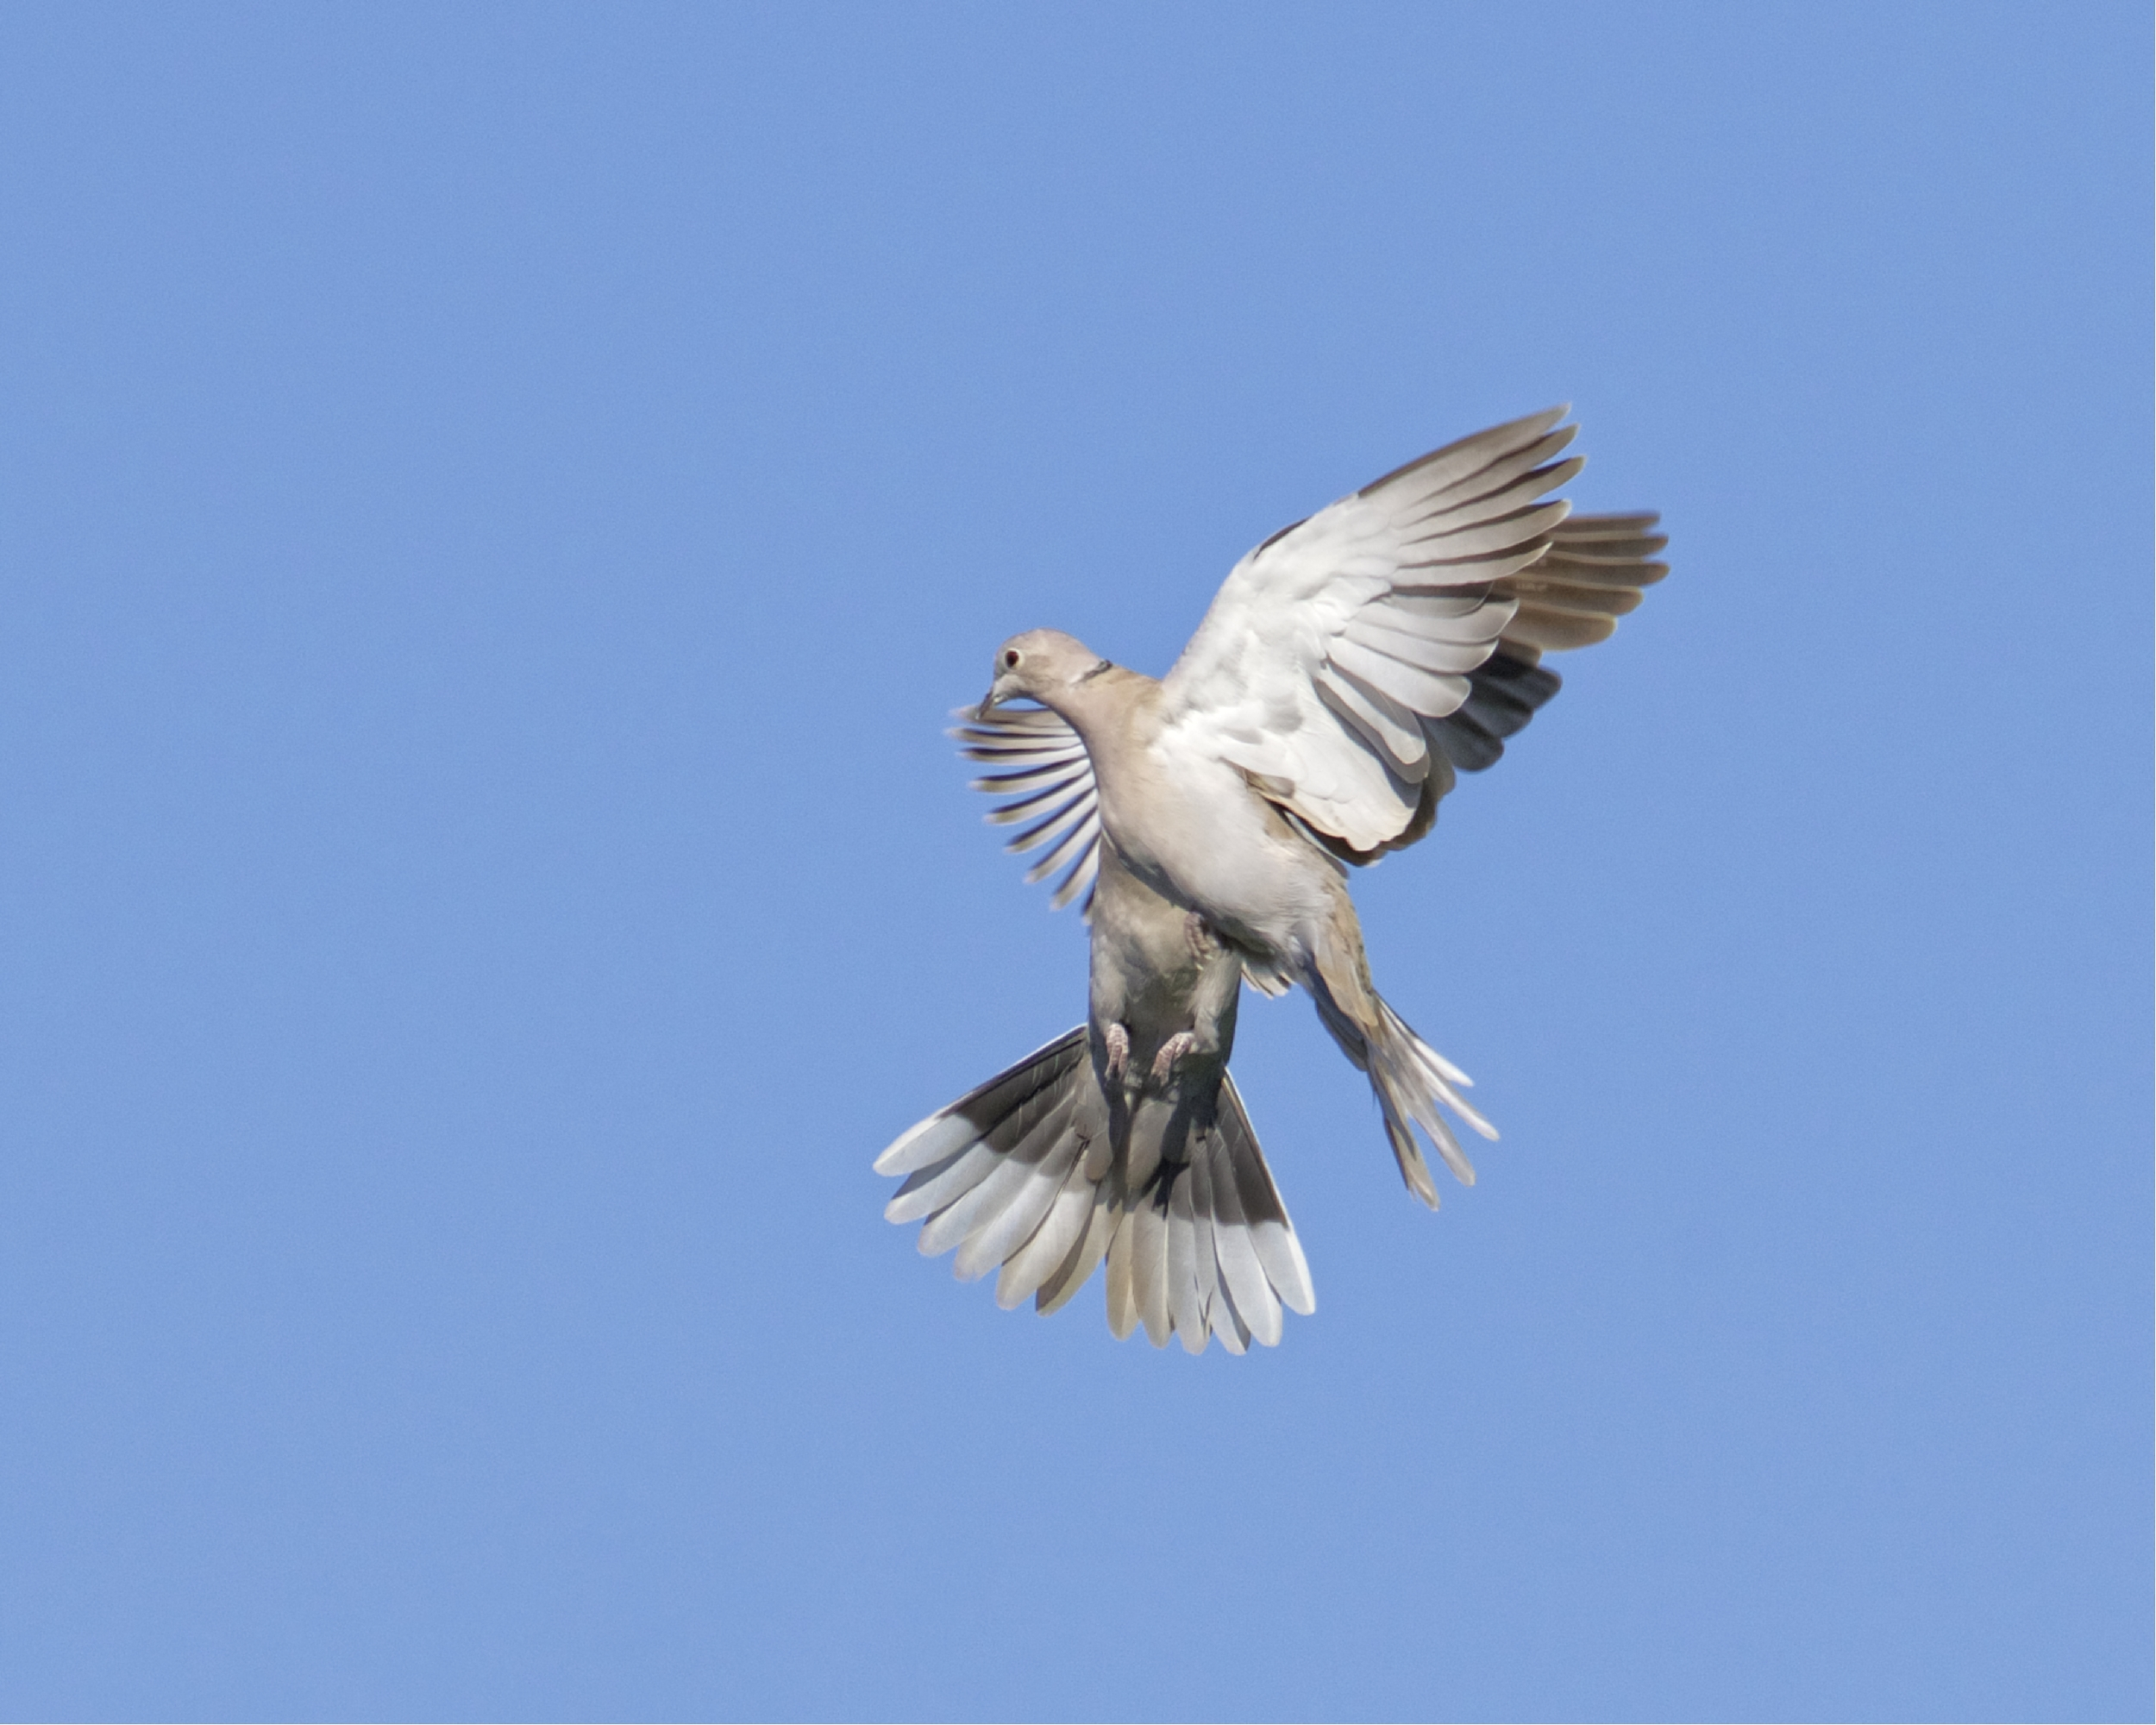 The Mourning Doves are so shook up by the Hawks they nearly collide..